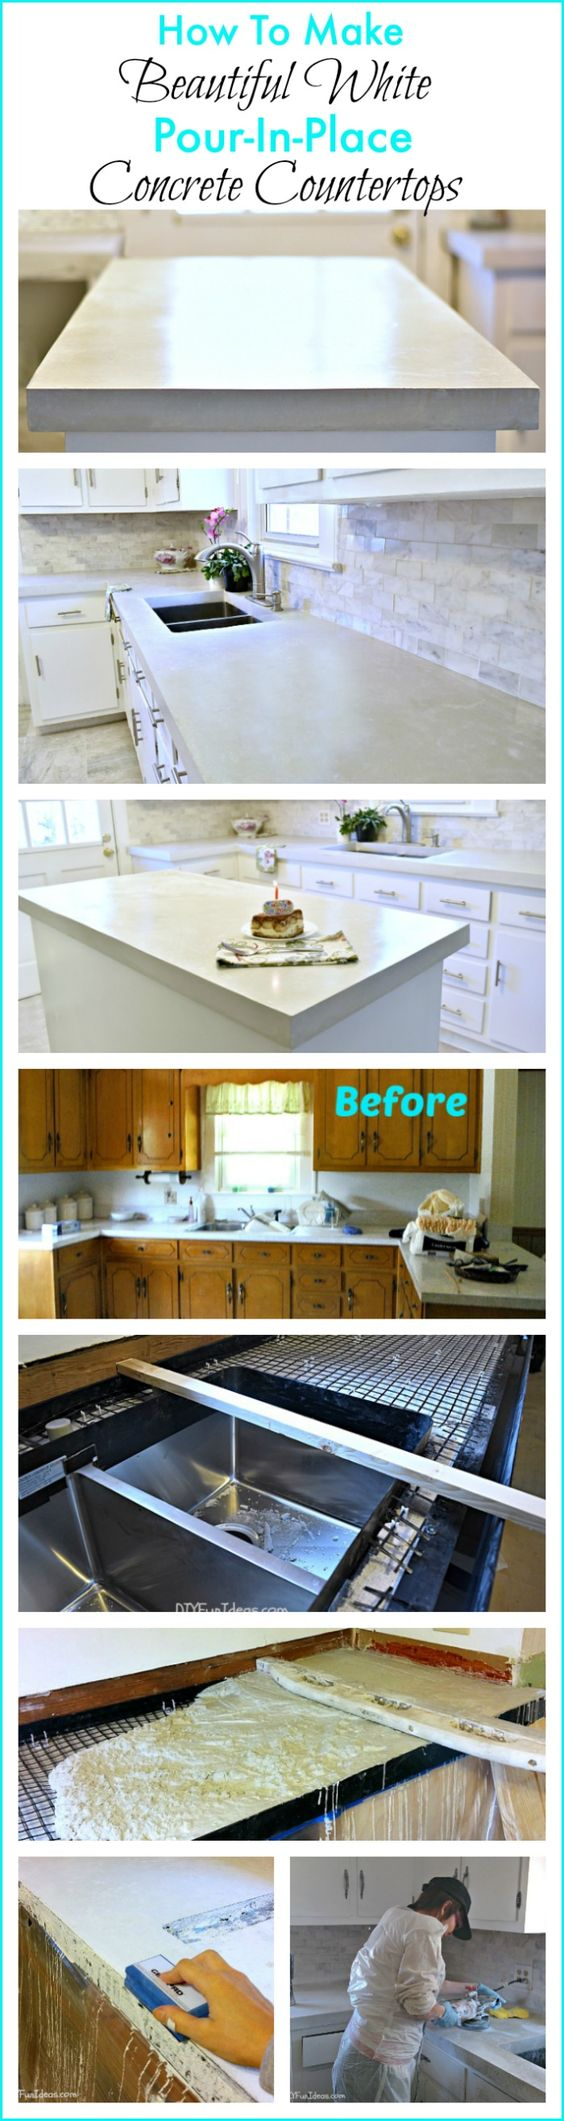 You can save thousands of $$ by making your own countertops!!! This is the easiest system for DIY concrete countertops. There are no forms to build. Instead, you cut a cement board base to fit over the cabinets and screw in some plastic edging,  then pour in your concrete. The entire project was done by one lady, with just a little help from another to mix the concrete. If I can do it, anyone can. .........one of the most popular pins